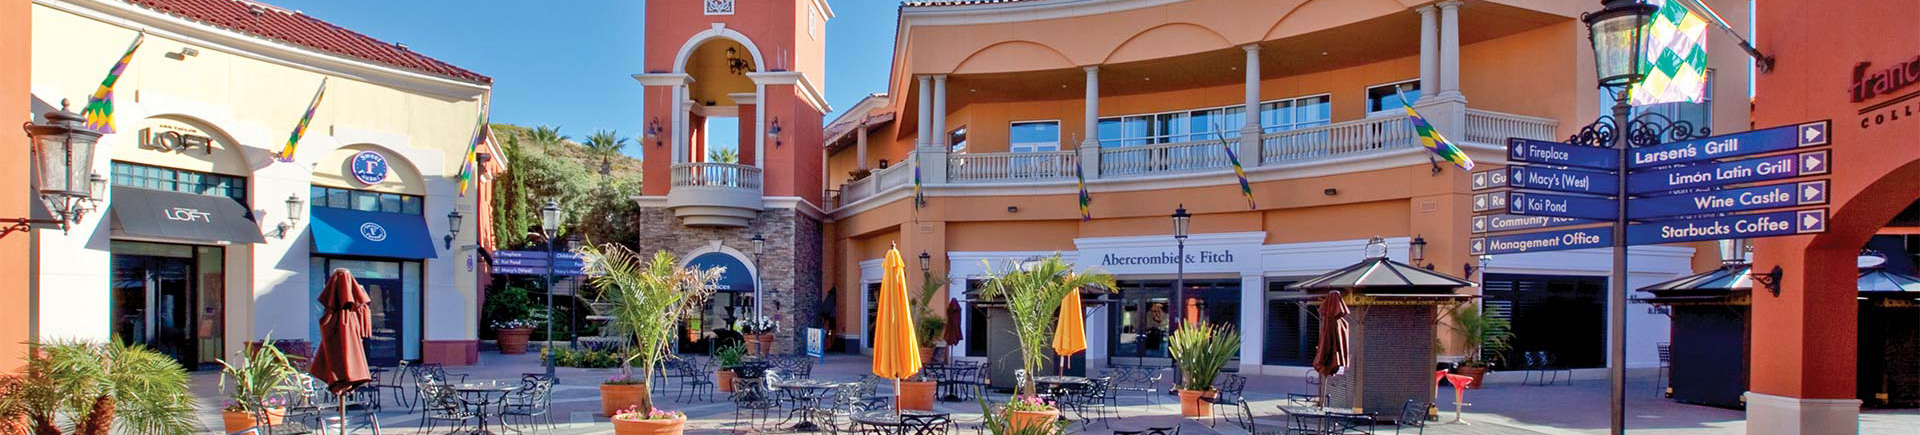 Indian Oaks Apartments in Simi Valley, CA - Simi Valley Town Center